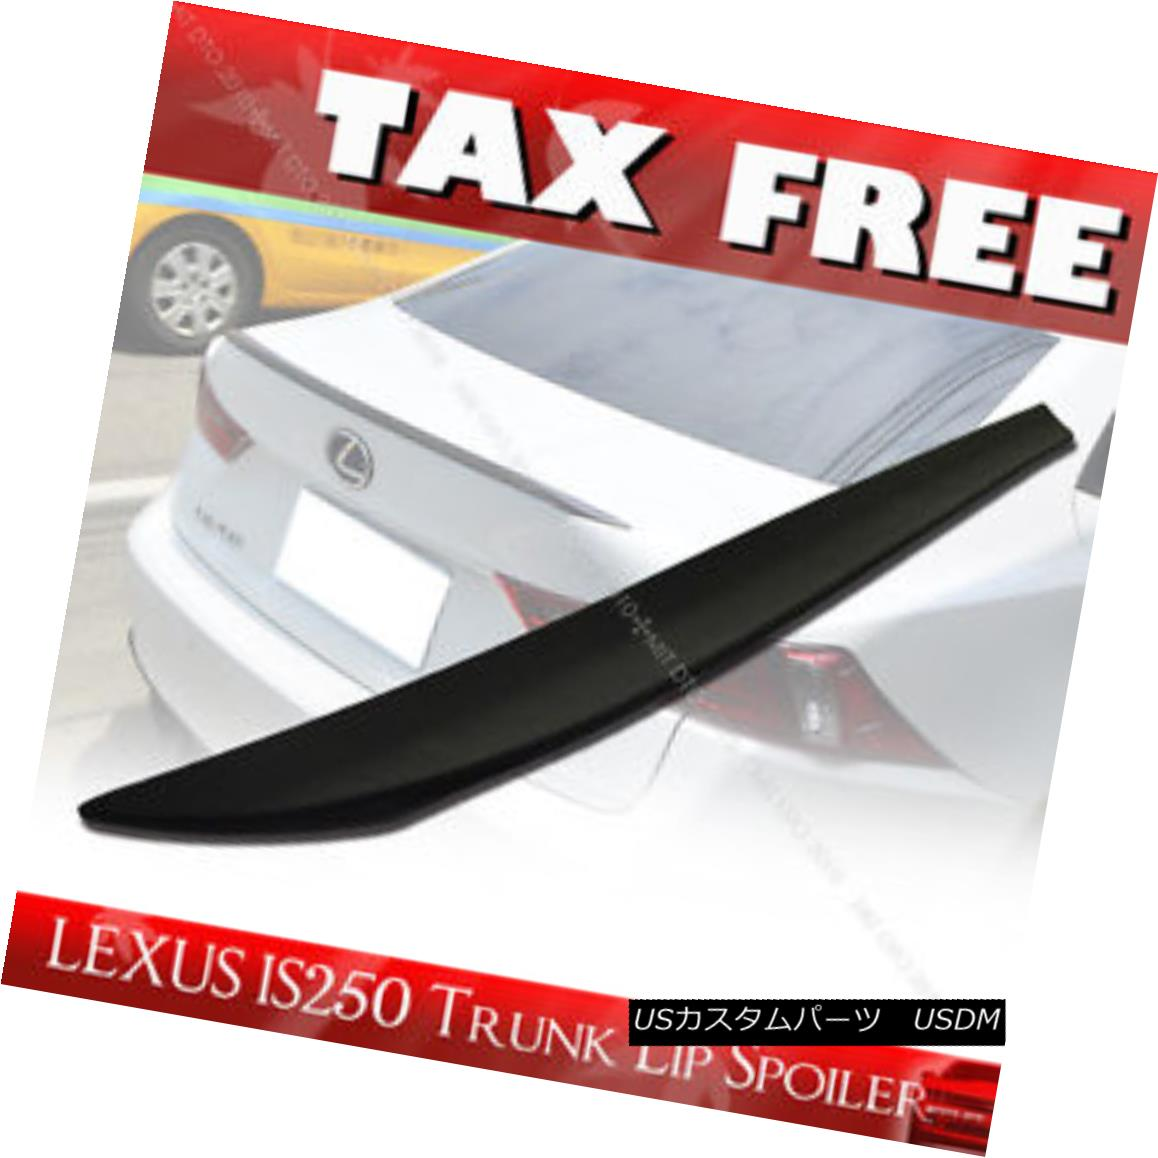 New Rear Trunk Ducktail Spoiler For Lexus IS250 H Style Wing Carbon Fiber Lip